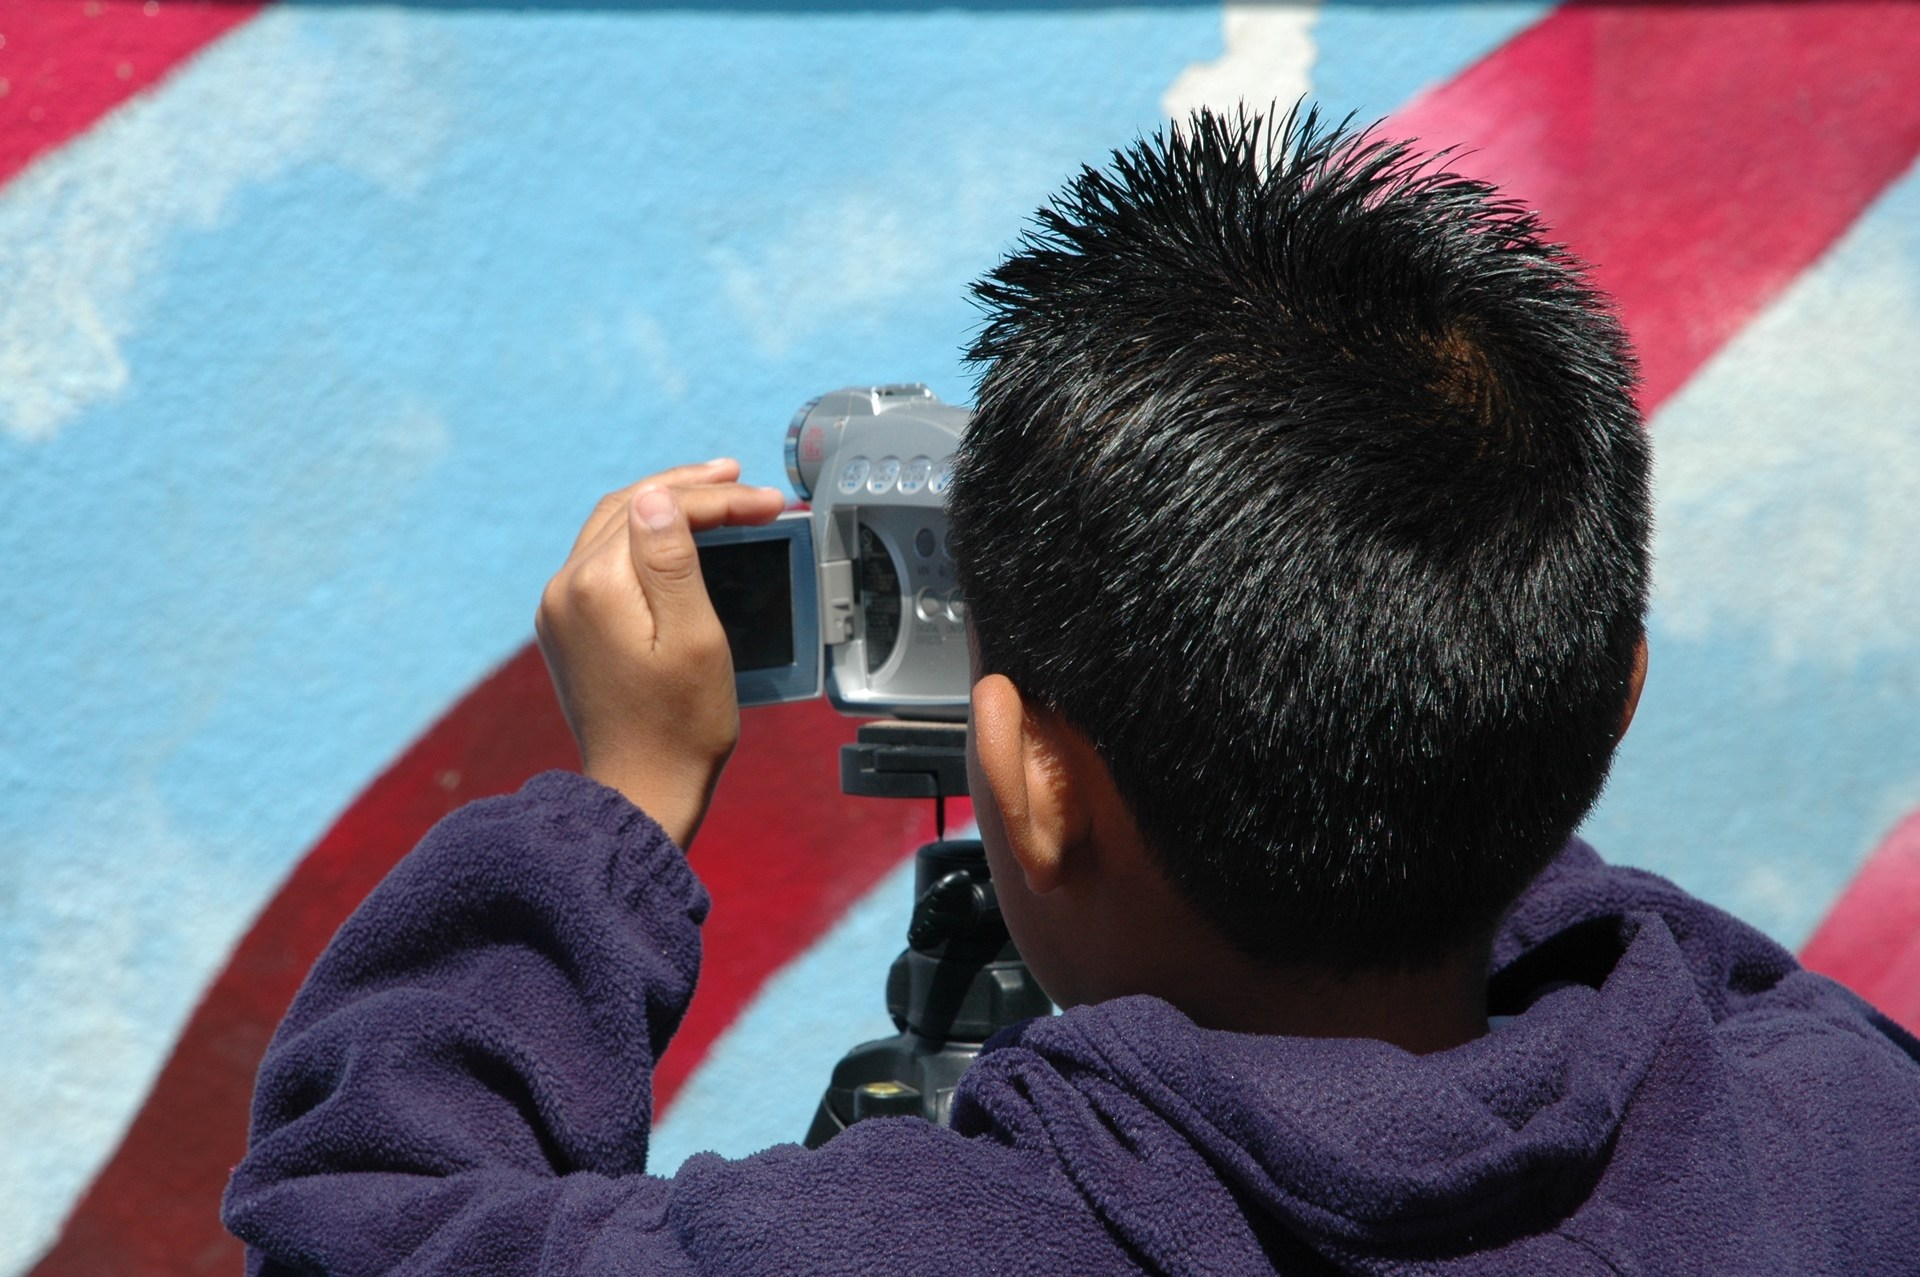 Student with video camera.